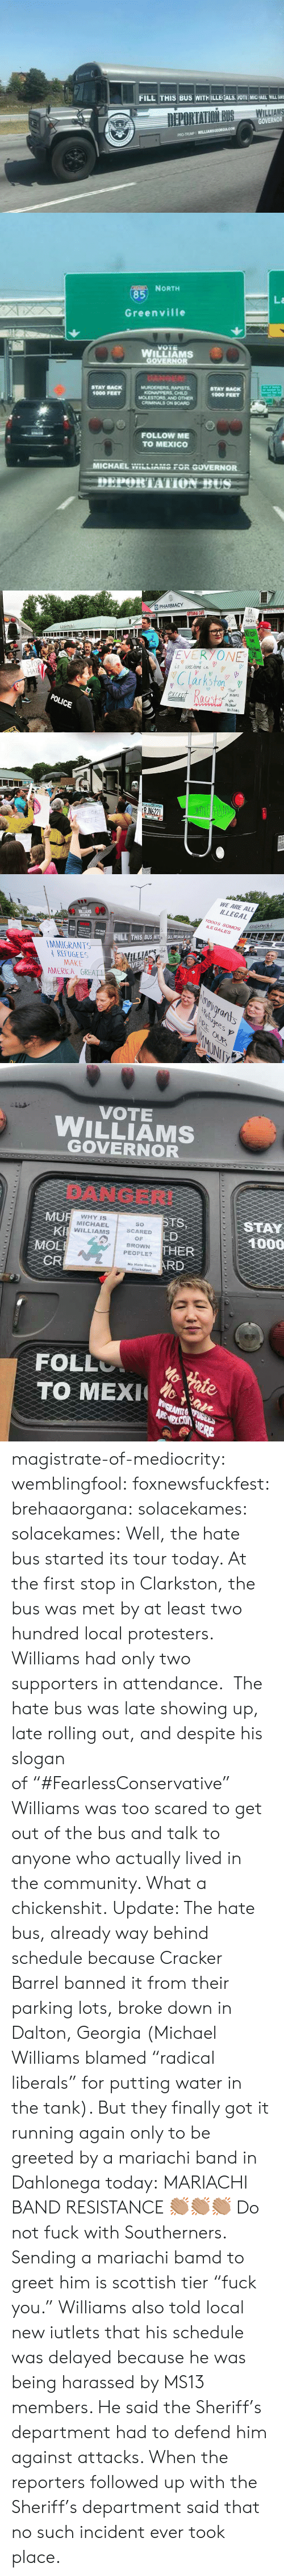 """Deportation: FILL THIS BUS WITH ILLEIEALS, YOTE MICHAEL WILL NS   85  La  Greenville  WILLIAMS  STAY BACK  1000 FEET  MOLESTORS, AND OTHER  1000 FEET  FOLLOW ME  TO MEXICO  MICHAEL  """"r-in-no  -OR  GOVERNOR   , PHARMACY  GA  VOTES  STO  arkfon  means  POLICE  hichal  RJNG22  DE PORT   WE ARE ALL  ILLEGALt  TODOS SOMOS  ILE GALES  WILLIAMS  NEIC  ILL THIS BUS ITALS T  MMIGRANTS  REFUGEES  MAKE  AMERICA GREA  swunrants  OUR  Ily   VOTE  WILLIAMS  GOVERNOR  DANGER!  MU  Kl  MOE  CR  STS  LD  THER  RD  WHYIS  MICHAEL  WILLIAMS  So  SCARED  OF  BROWN  PEOPLE?  STAY  1000  Hate Bus in  Clarkstonl  FOLL  TO MEX ae magistrate-of-mediocrity: wemblingfool:   foxnewsfuckfest:  brehaaorgana:   solacekames:   solacekames: Well, the hate bus started its tour today. At the first stop in Clarkston, the bus was met by at least two hundred local protesters. Williams had only two supporters in attendance. The hate bus was late showing up, late rolling out, and despite his slogan of""""#FearlessConservative"""" Williams was too scared to get out of the bus and talk to anyone who actually lived in the community. What a chickenshit. Update: The hate bus, already way behind schedule because Cracker Barrel banned it from their parking lots, broke down in Dalton, Georgia (Michael Williams blamed """"radical liberals"""" for putting water in the tank). But they finally got it running again only to be greeted by a mariachi band in Dahlonega today:   MARIACHI BAND RESISTANCE 👏🏽👏🏽👏🏽   Do not fuck with Southerners.  Sending a mariachi bamd to greet him is scottish tier """"fuck you.""""   Williams also told local new iutlets that his schedule was delayed because he was being harassed by MS13 members. He said the Sheriff's department had to defend him against attacks. When the reporters followed up with the Sheriff's department said that no such incident ever took place."""